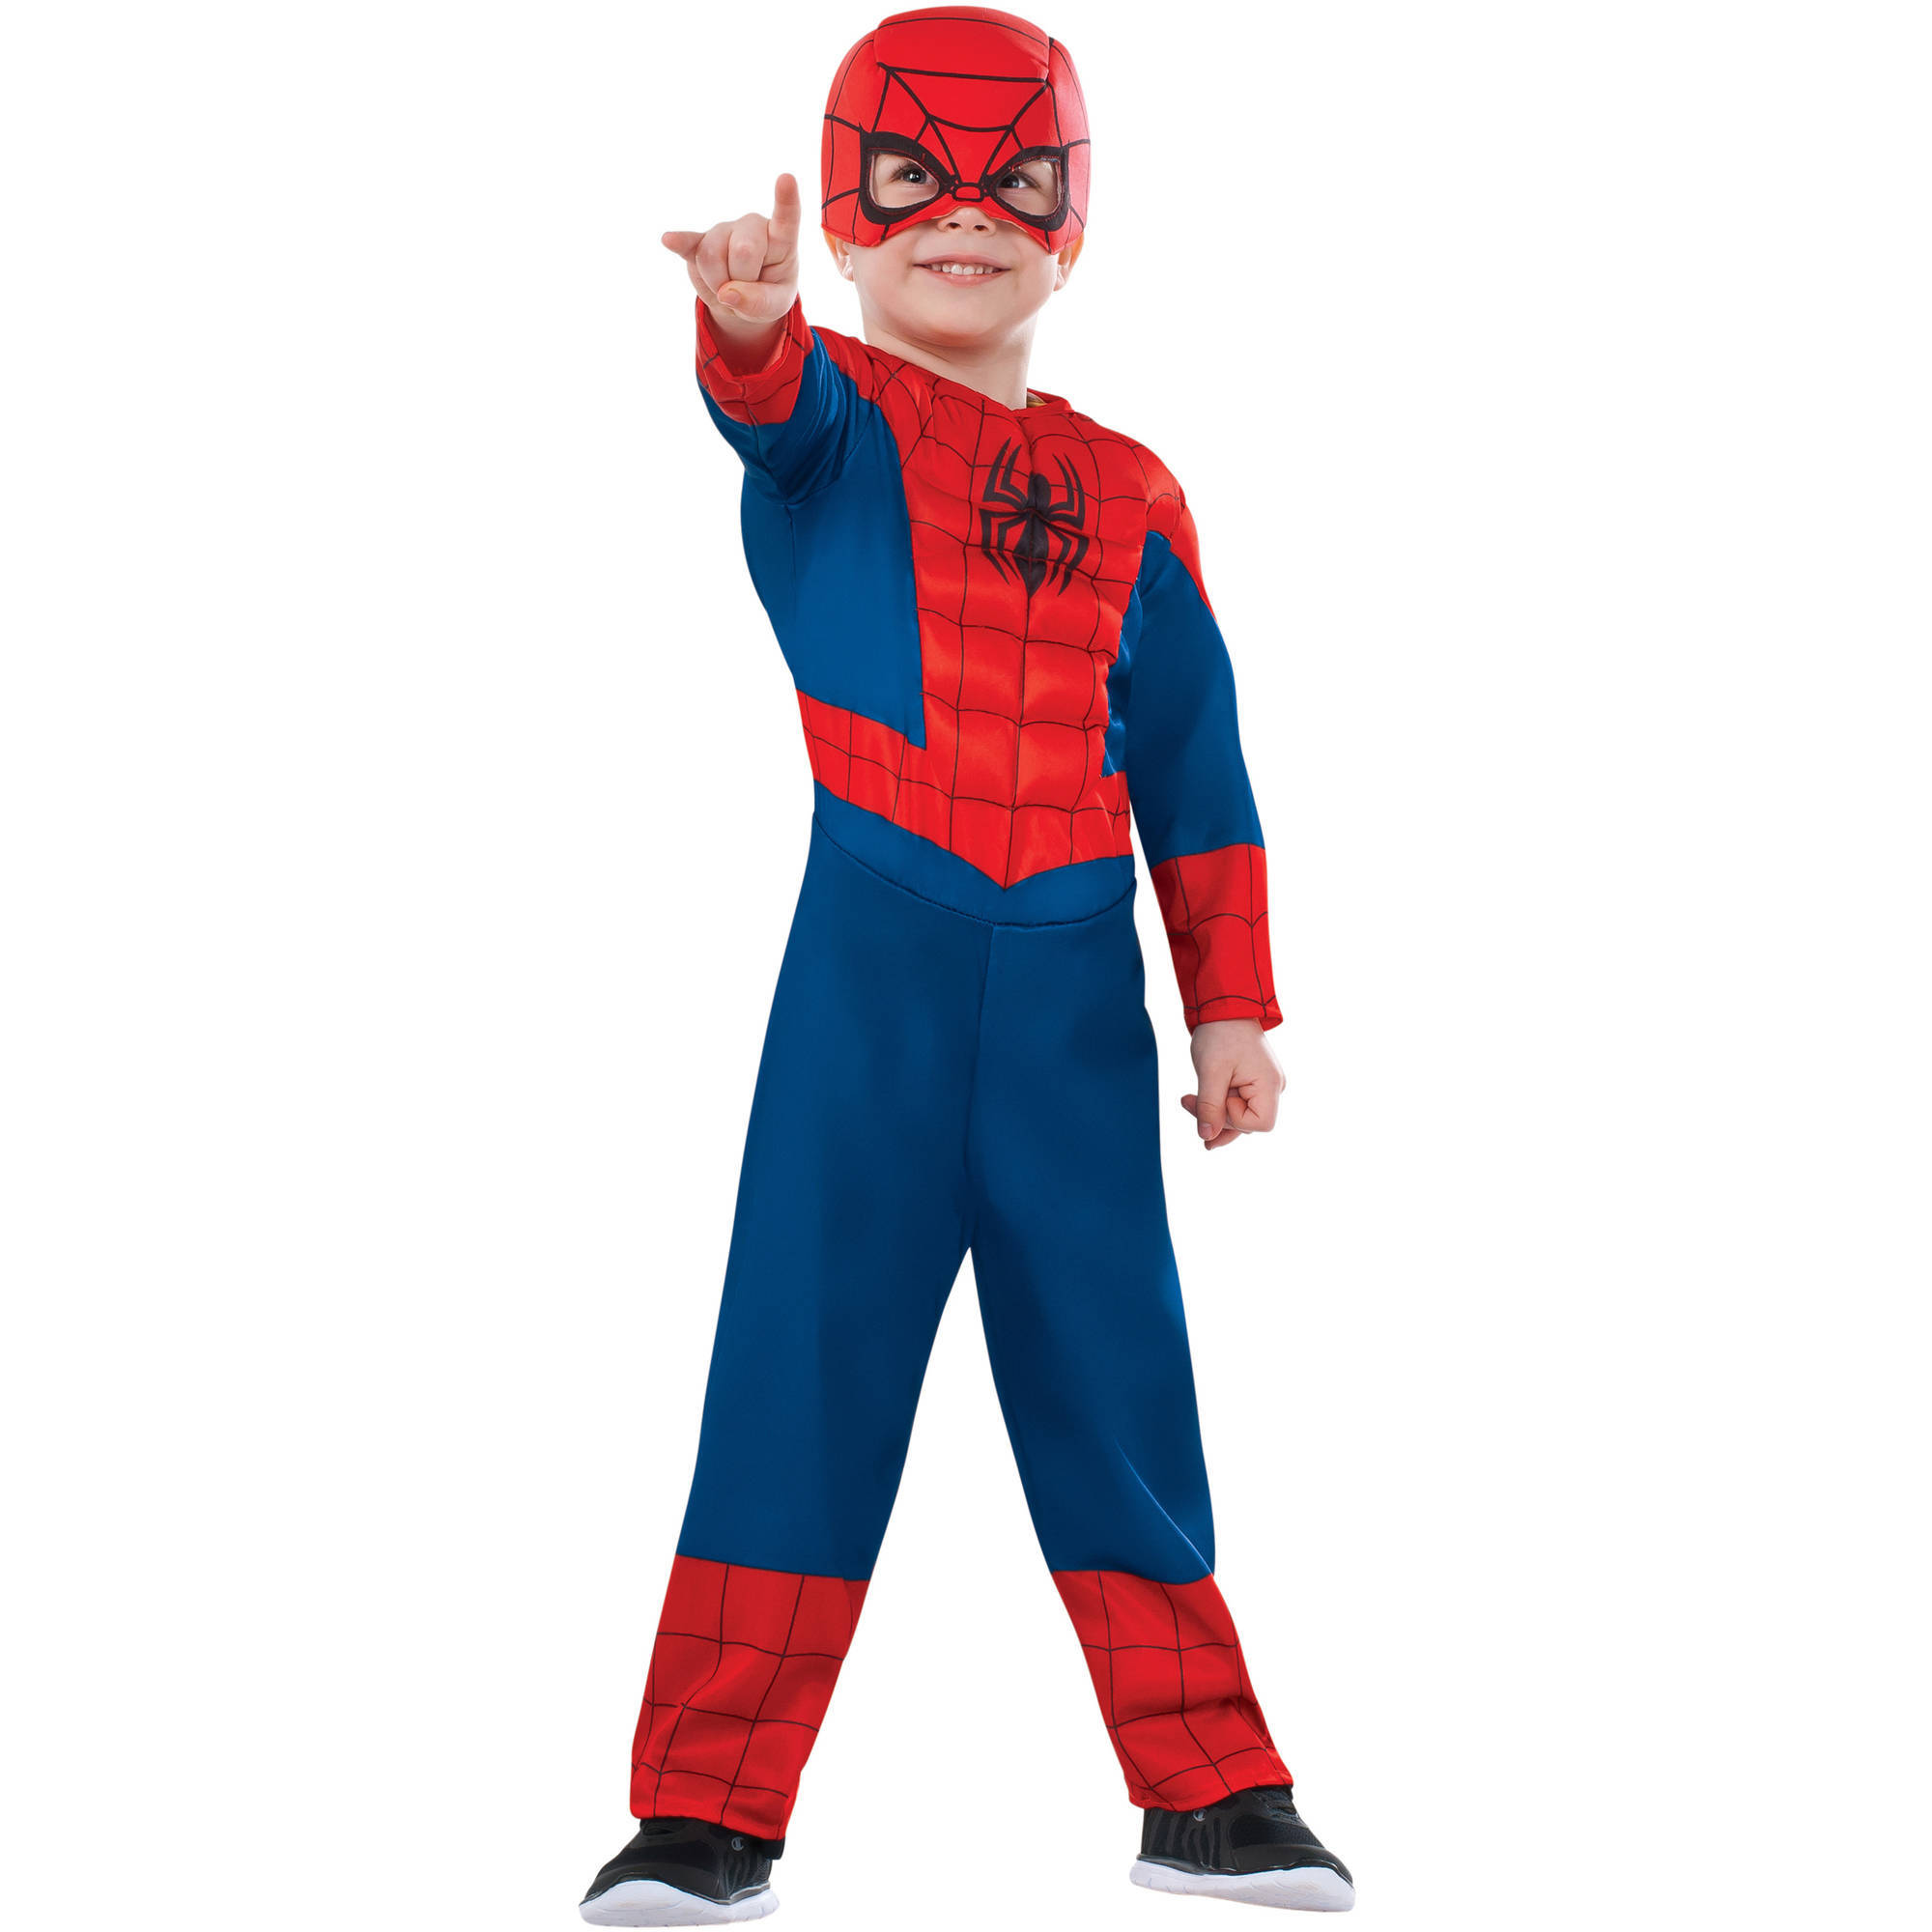 Rubieu0027s Marvel Spiderman Muscle Chest Toddler Costume  sc 1 st  Walmart & All Halloween Costumes - Walmart.com